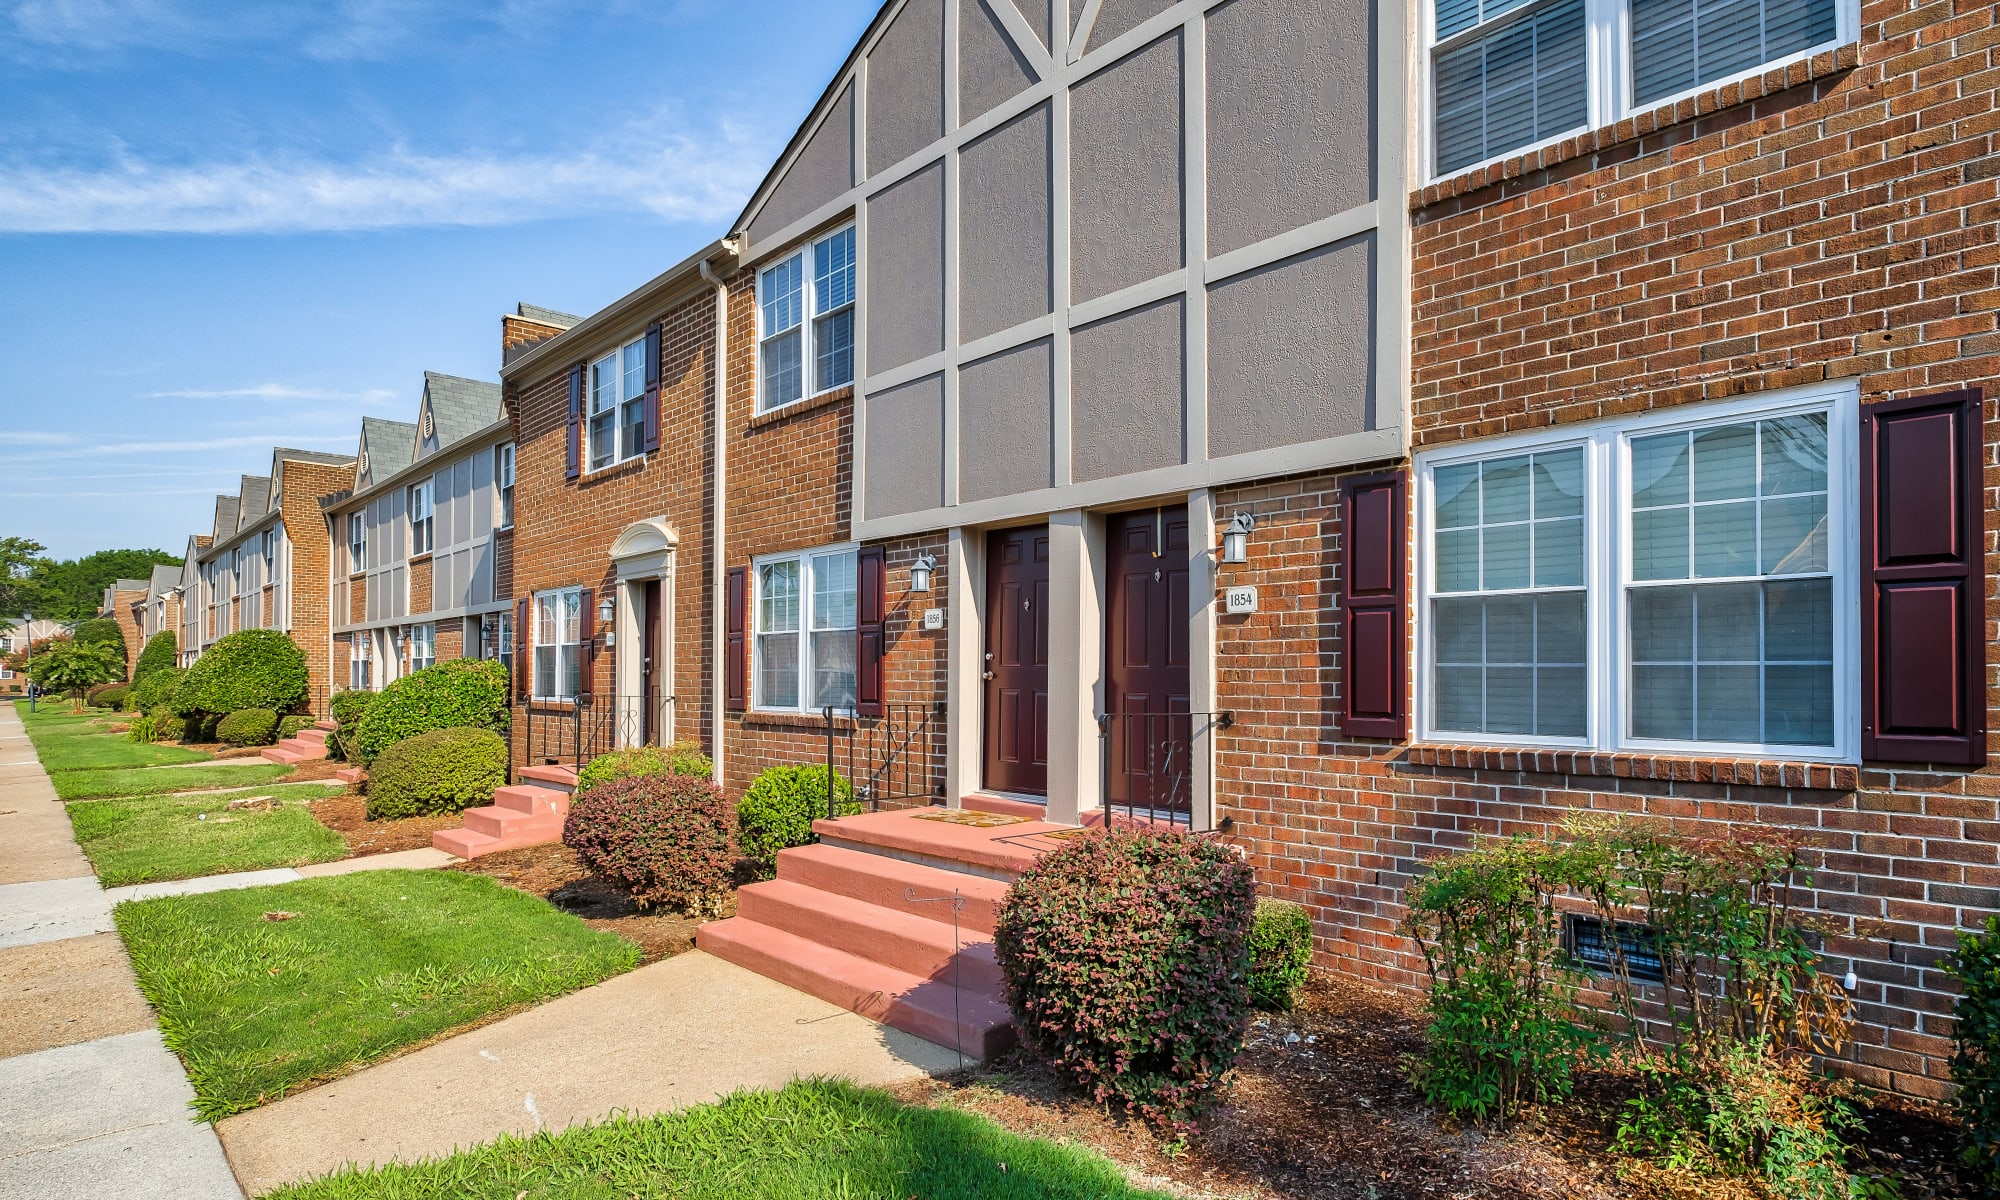 Maple Bay Townhomes in Virginia Beach, Virginia